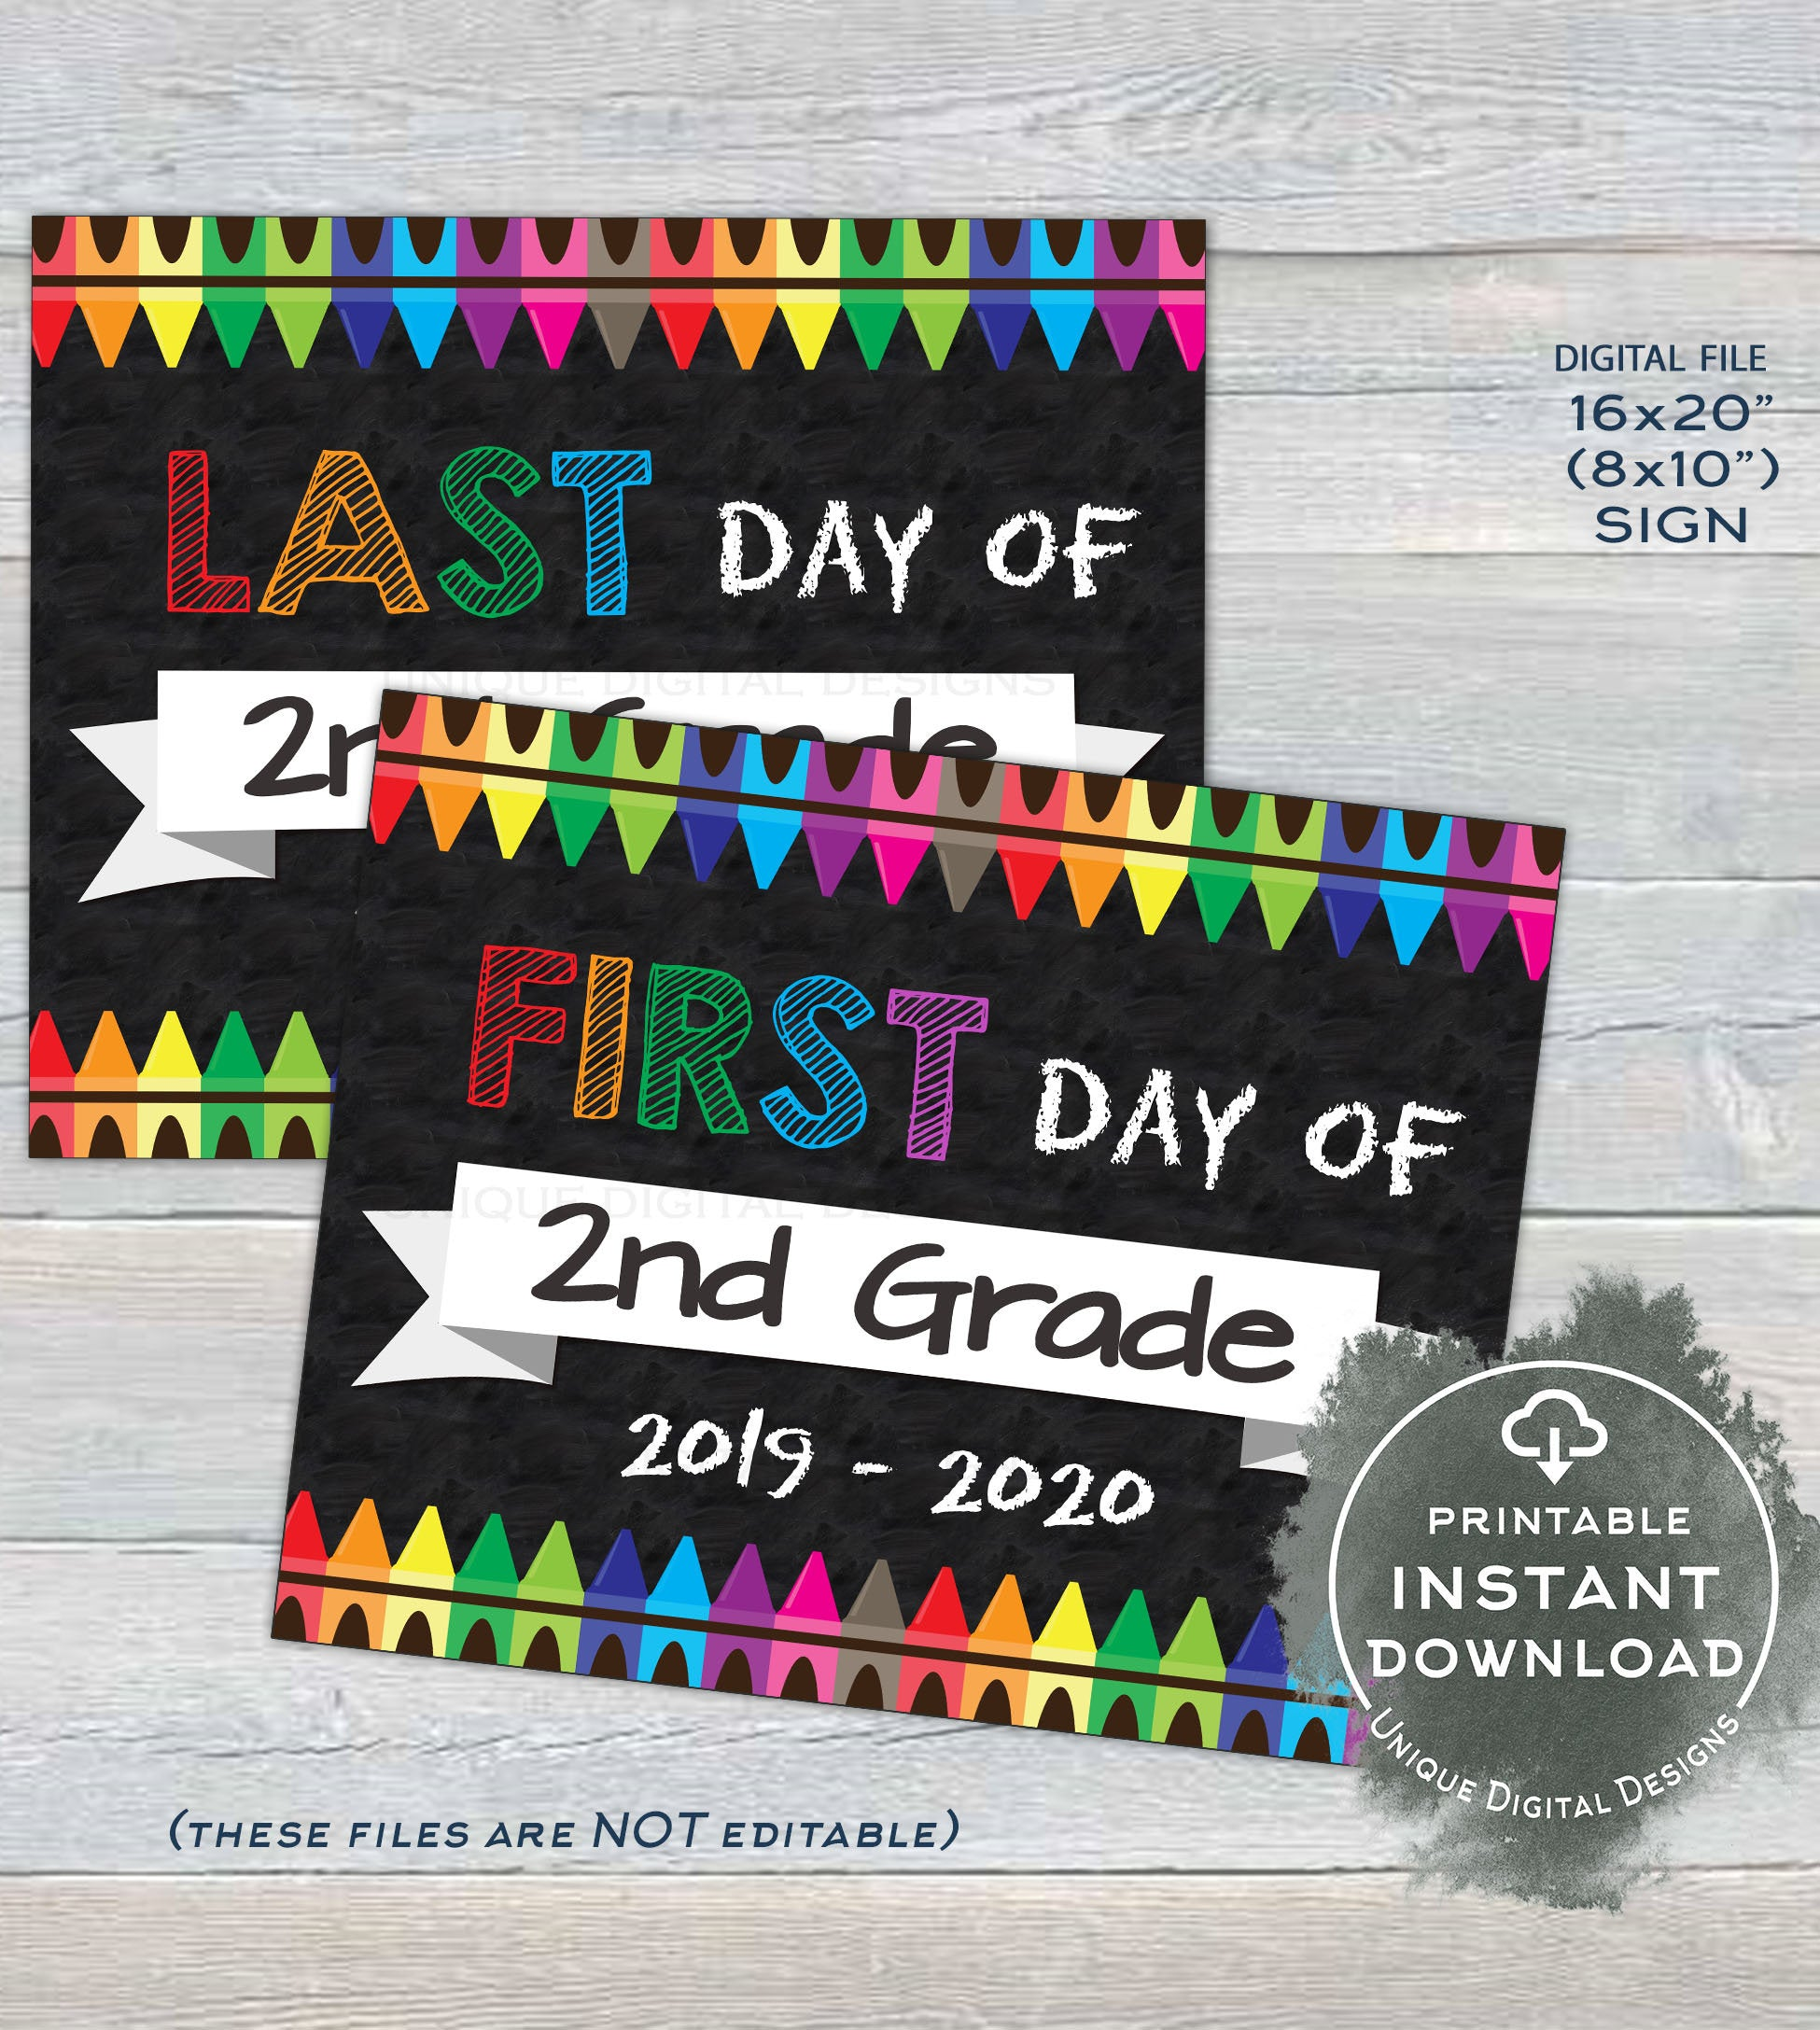 photograph relating to First Day of 2nd Grade Printable Sign known as Initial working day of College or university Chalkboard Indication reusable 1st working day 2nd Quality Signal Closing working day of College Crayon Electronic Printable Immediate Obtain 16x20 8x10